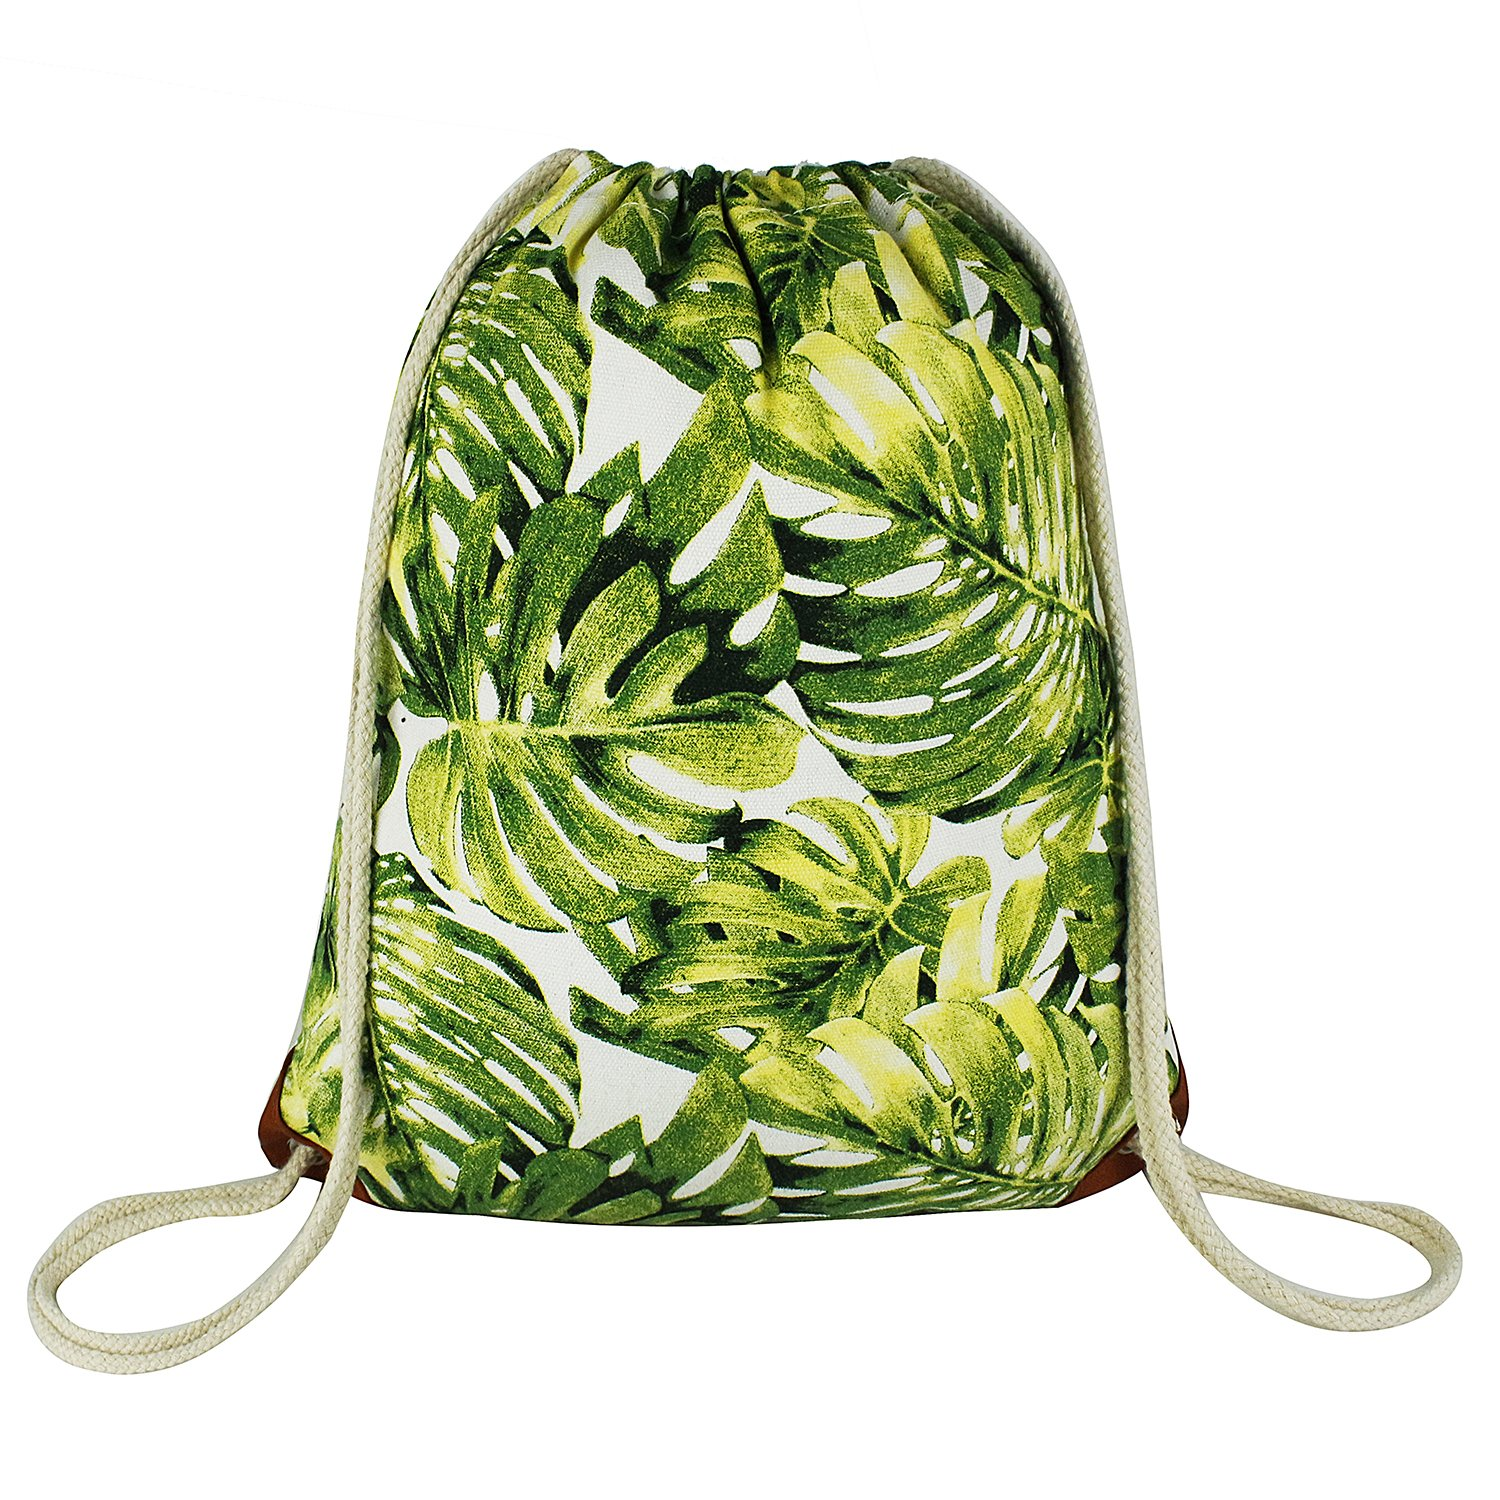 ArmoFit Leaf Drawstring Backpack with Pocket Canvas Leather Reinforced Corners Gym Sackpack for Women & Men (Monstera)